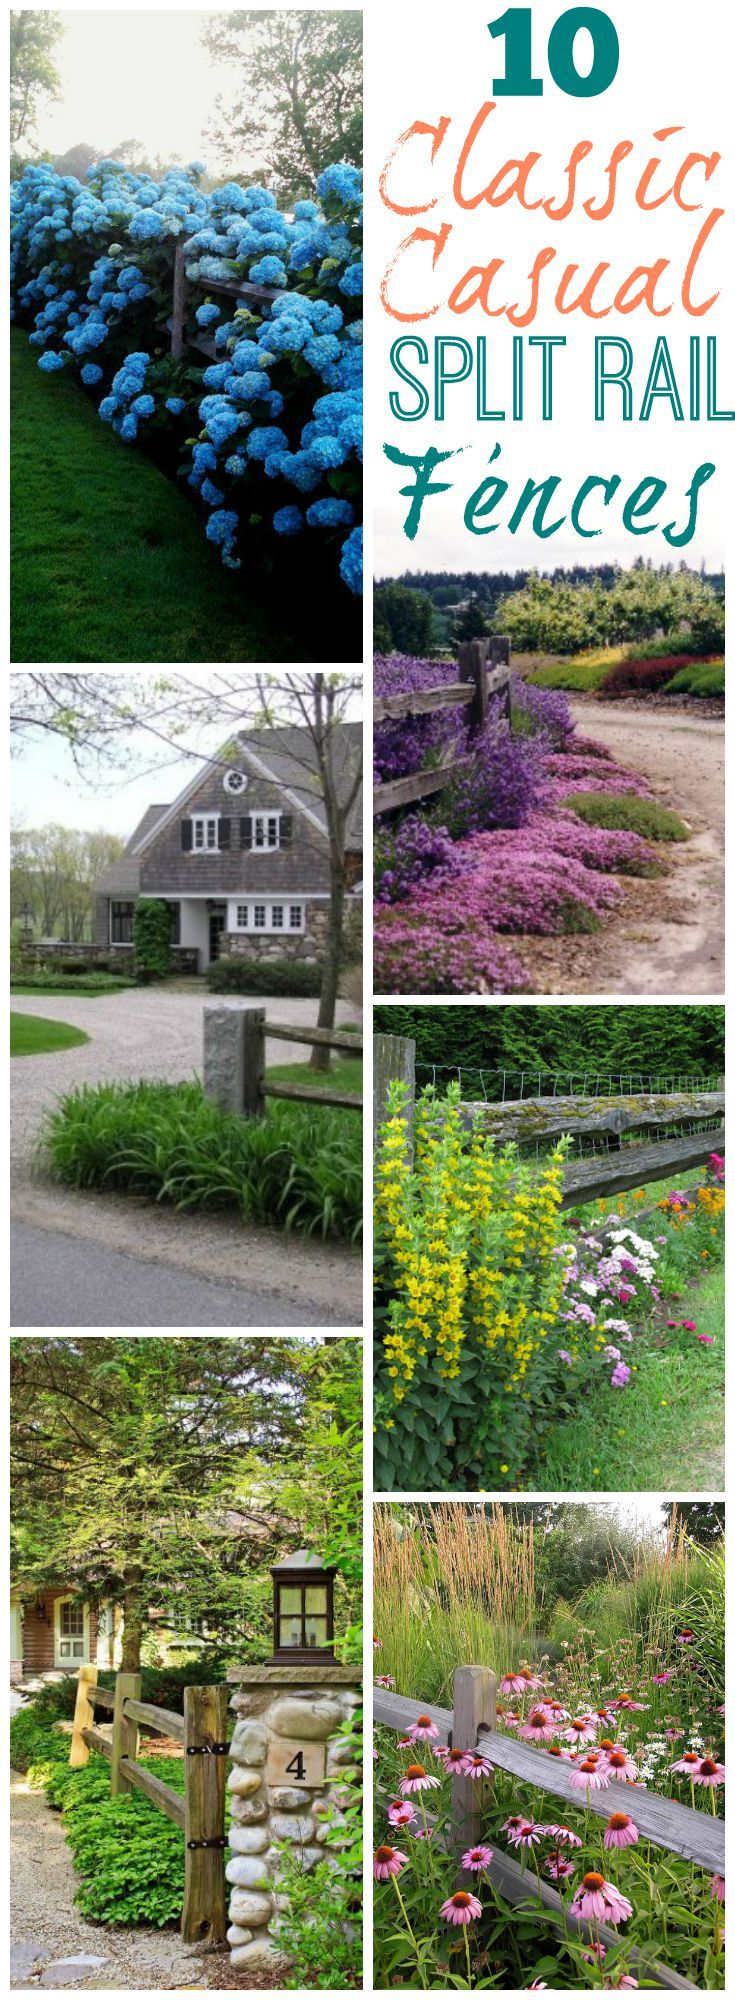 10 classic casual split rail fences at The Happy Housie